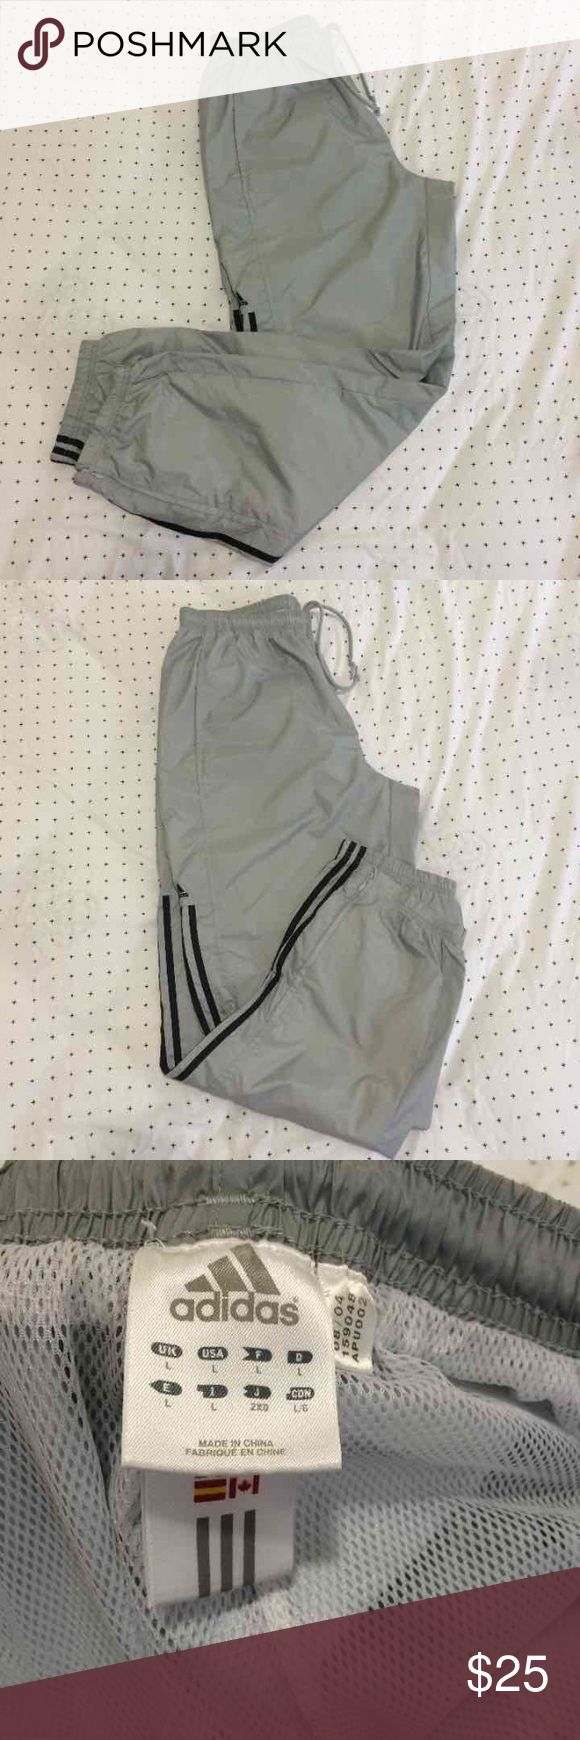 Adidas men's running pants. Gray color size L. Adidas running pants men size L, gray color, never been worn because its too big for my husband. Adidas Pants Track Pants & Joggers